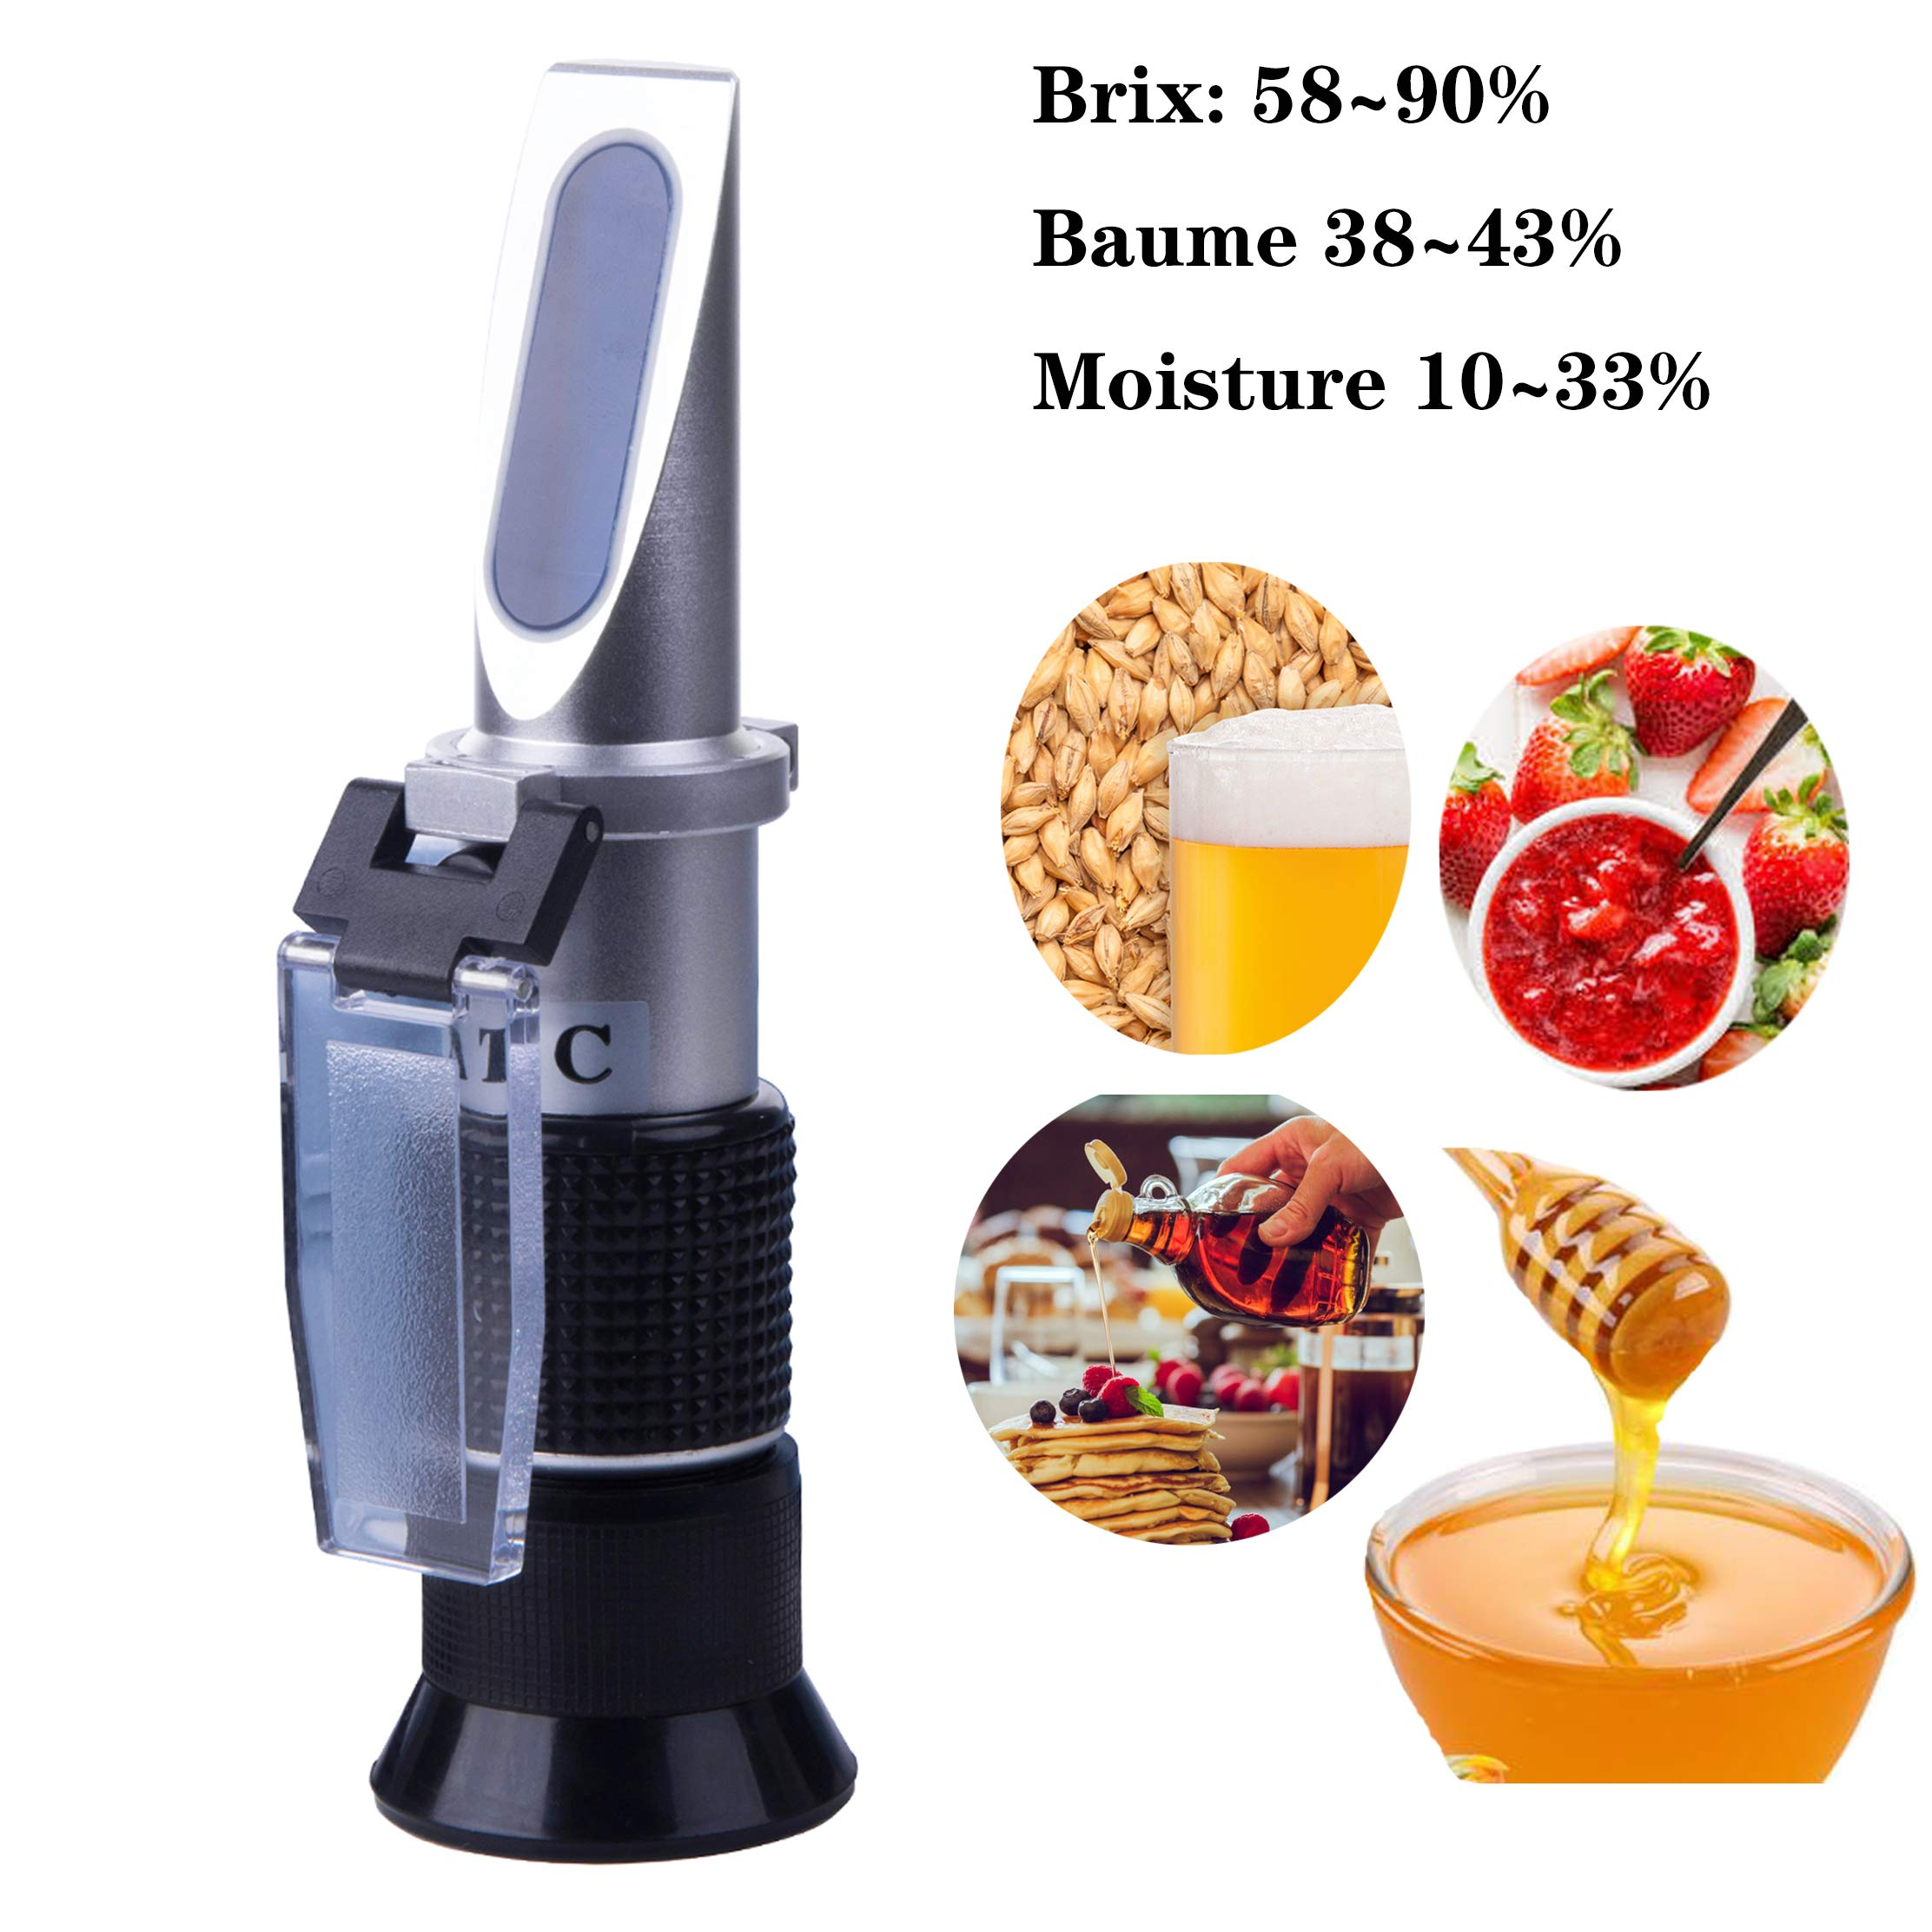 Logic box Sucrose Refractometer for Honey Moisture, Brix and Baume, 3-in-1 Uses, 58-90% Brix Tester with ATC, Ideal for high Sugar Maple Syrup, and Molasses, Malt,Bee Keeping Supplies